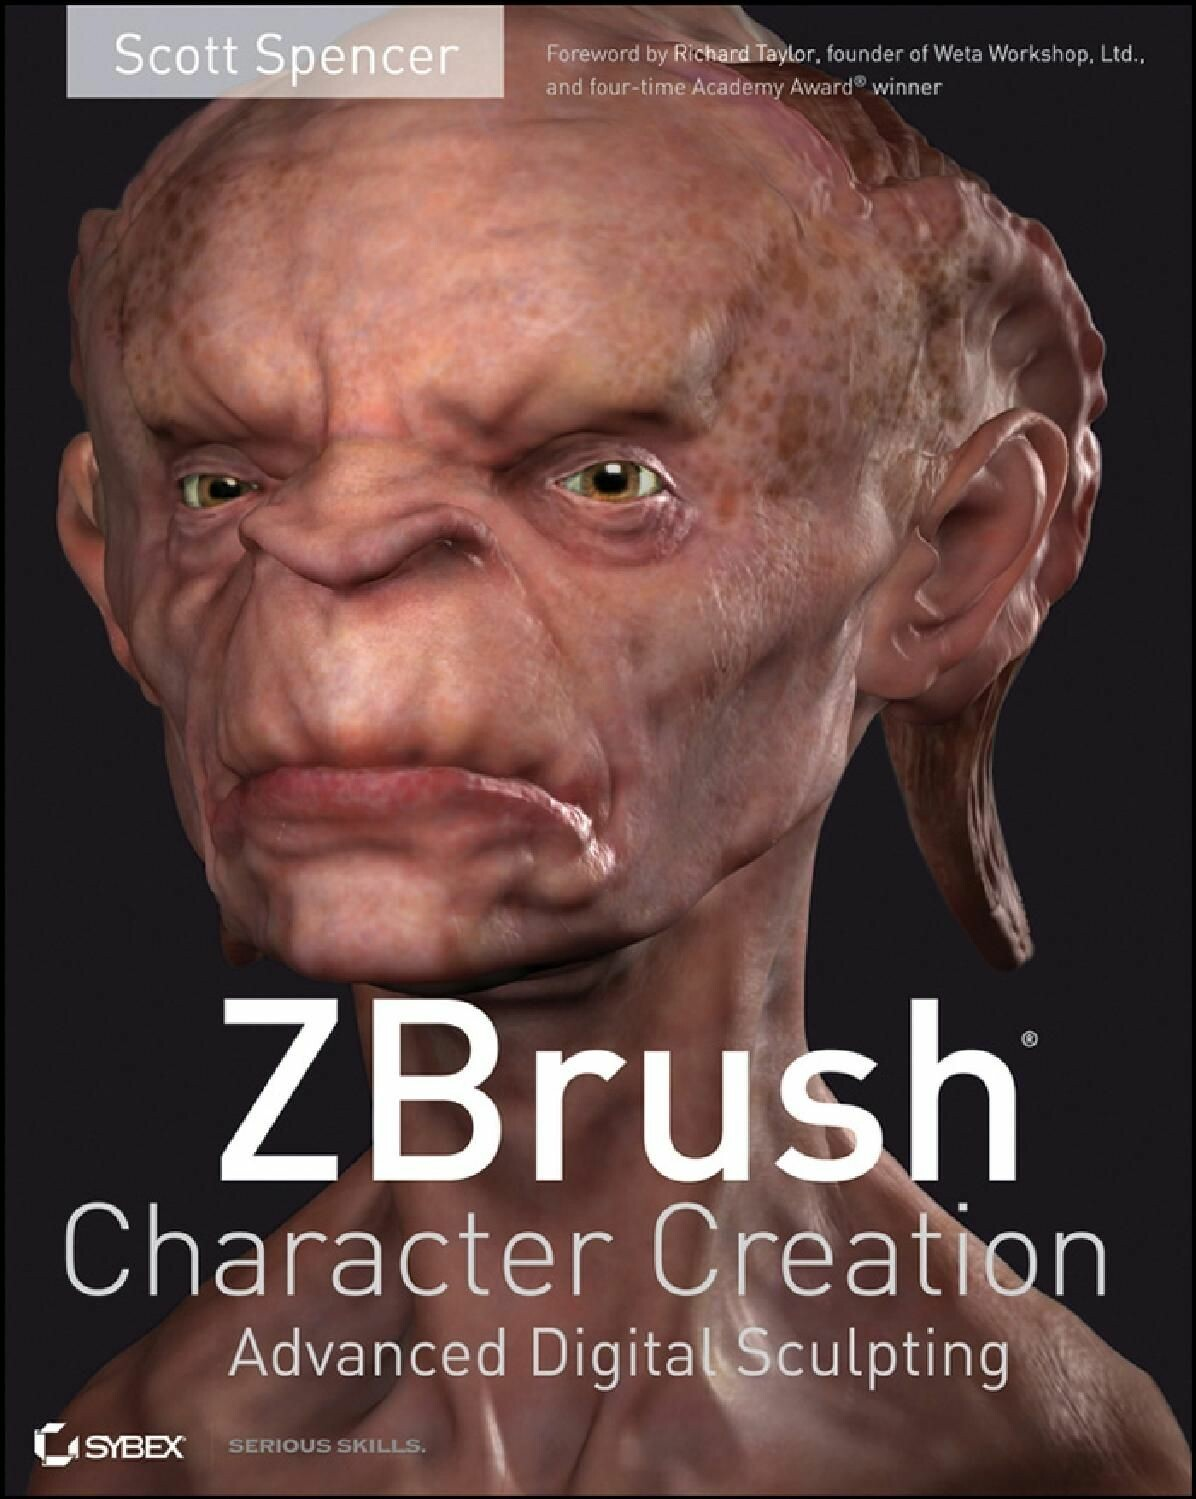 I am proud to be the author of 4 ZBrush textbooks from Sybex / John Wiley and Sons press. The best part about writing these books is hearing from artists who found them helpful in some way toward's their own journey.